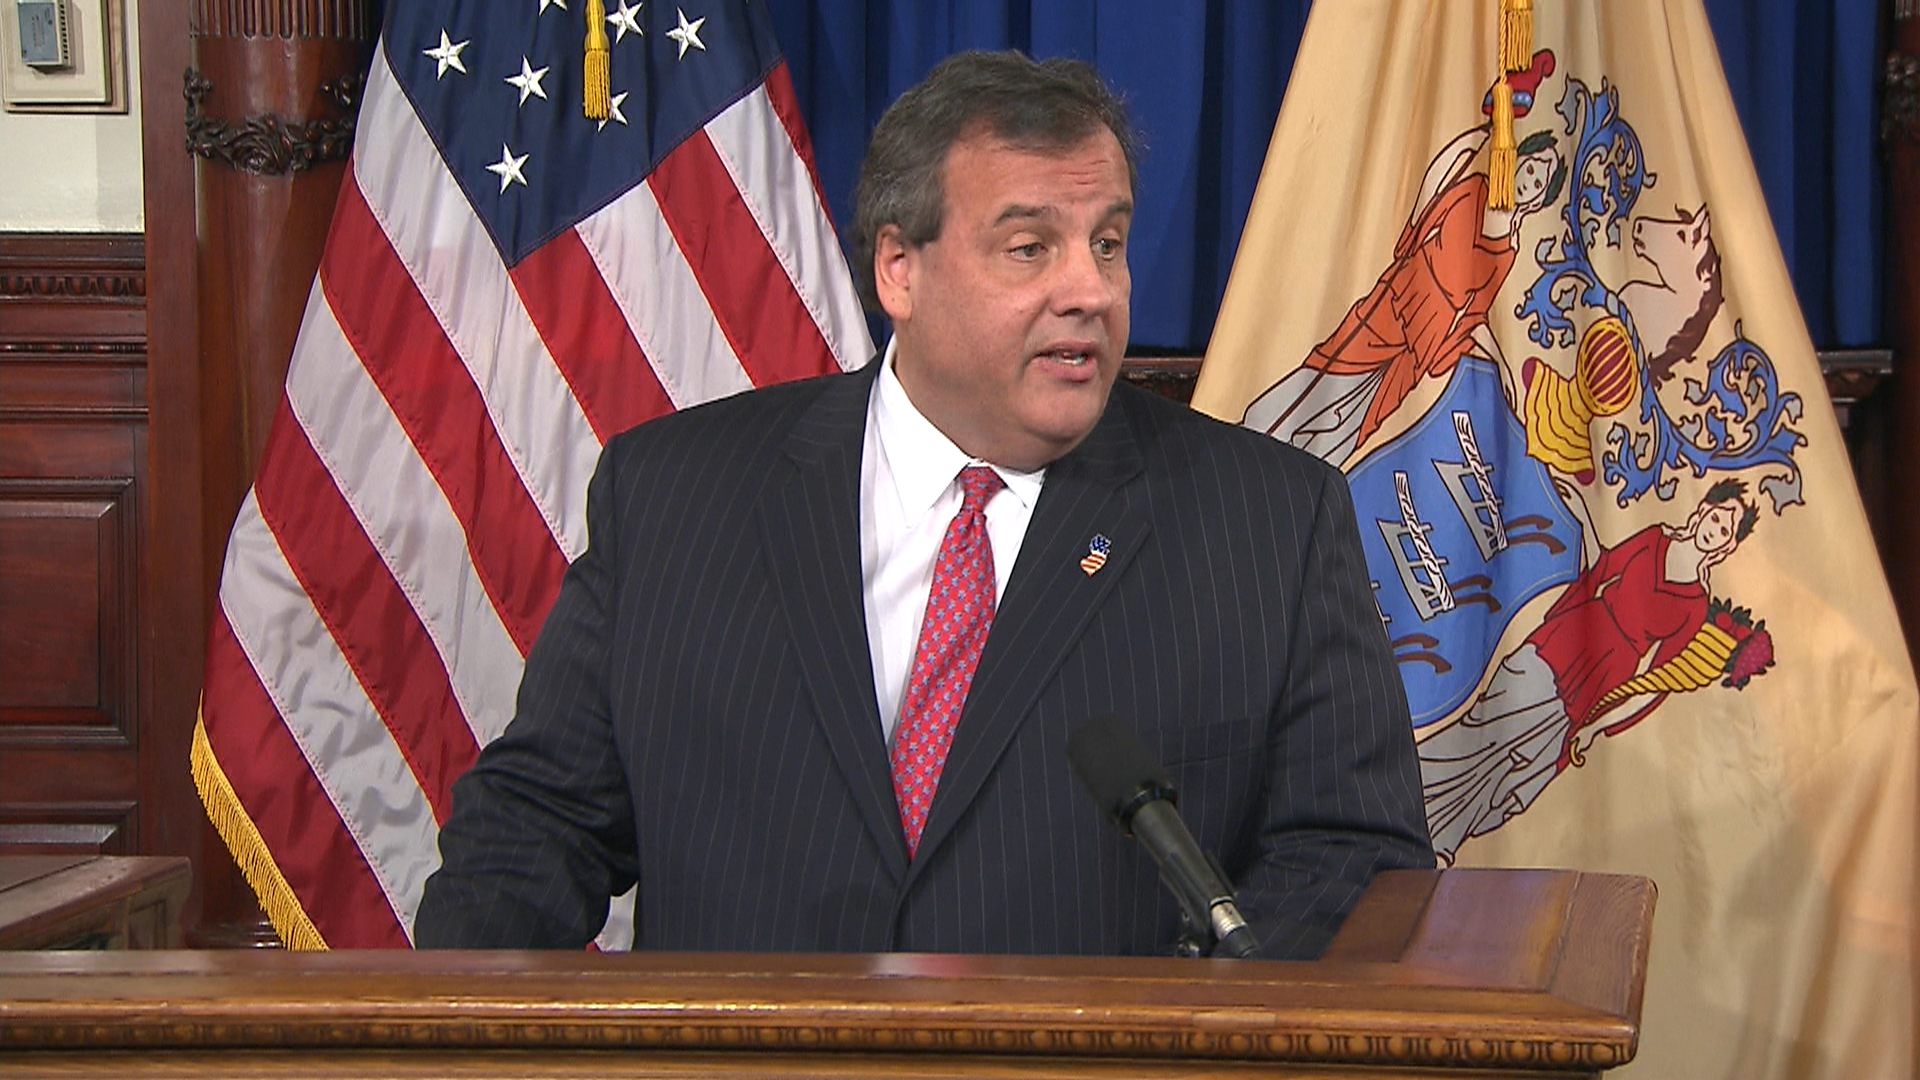 Chris Christie 'embarrassed and humiliated'